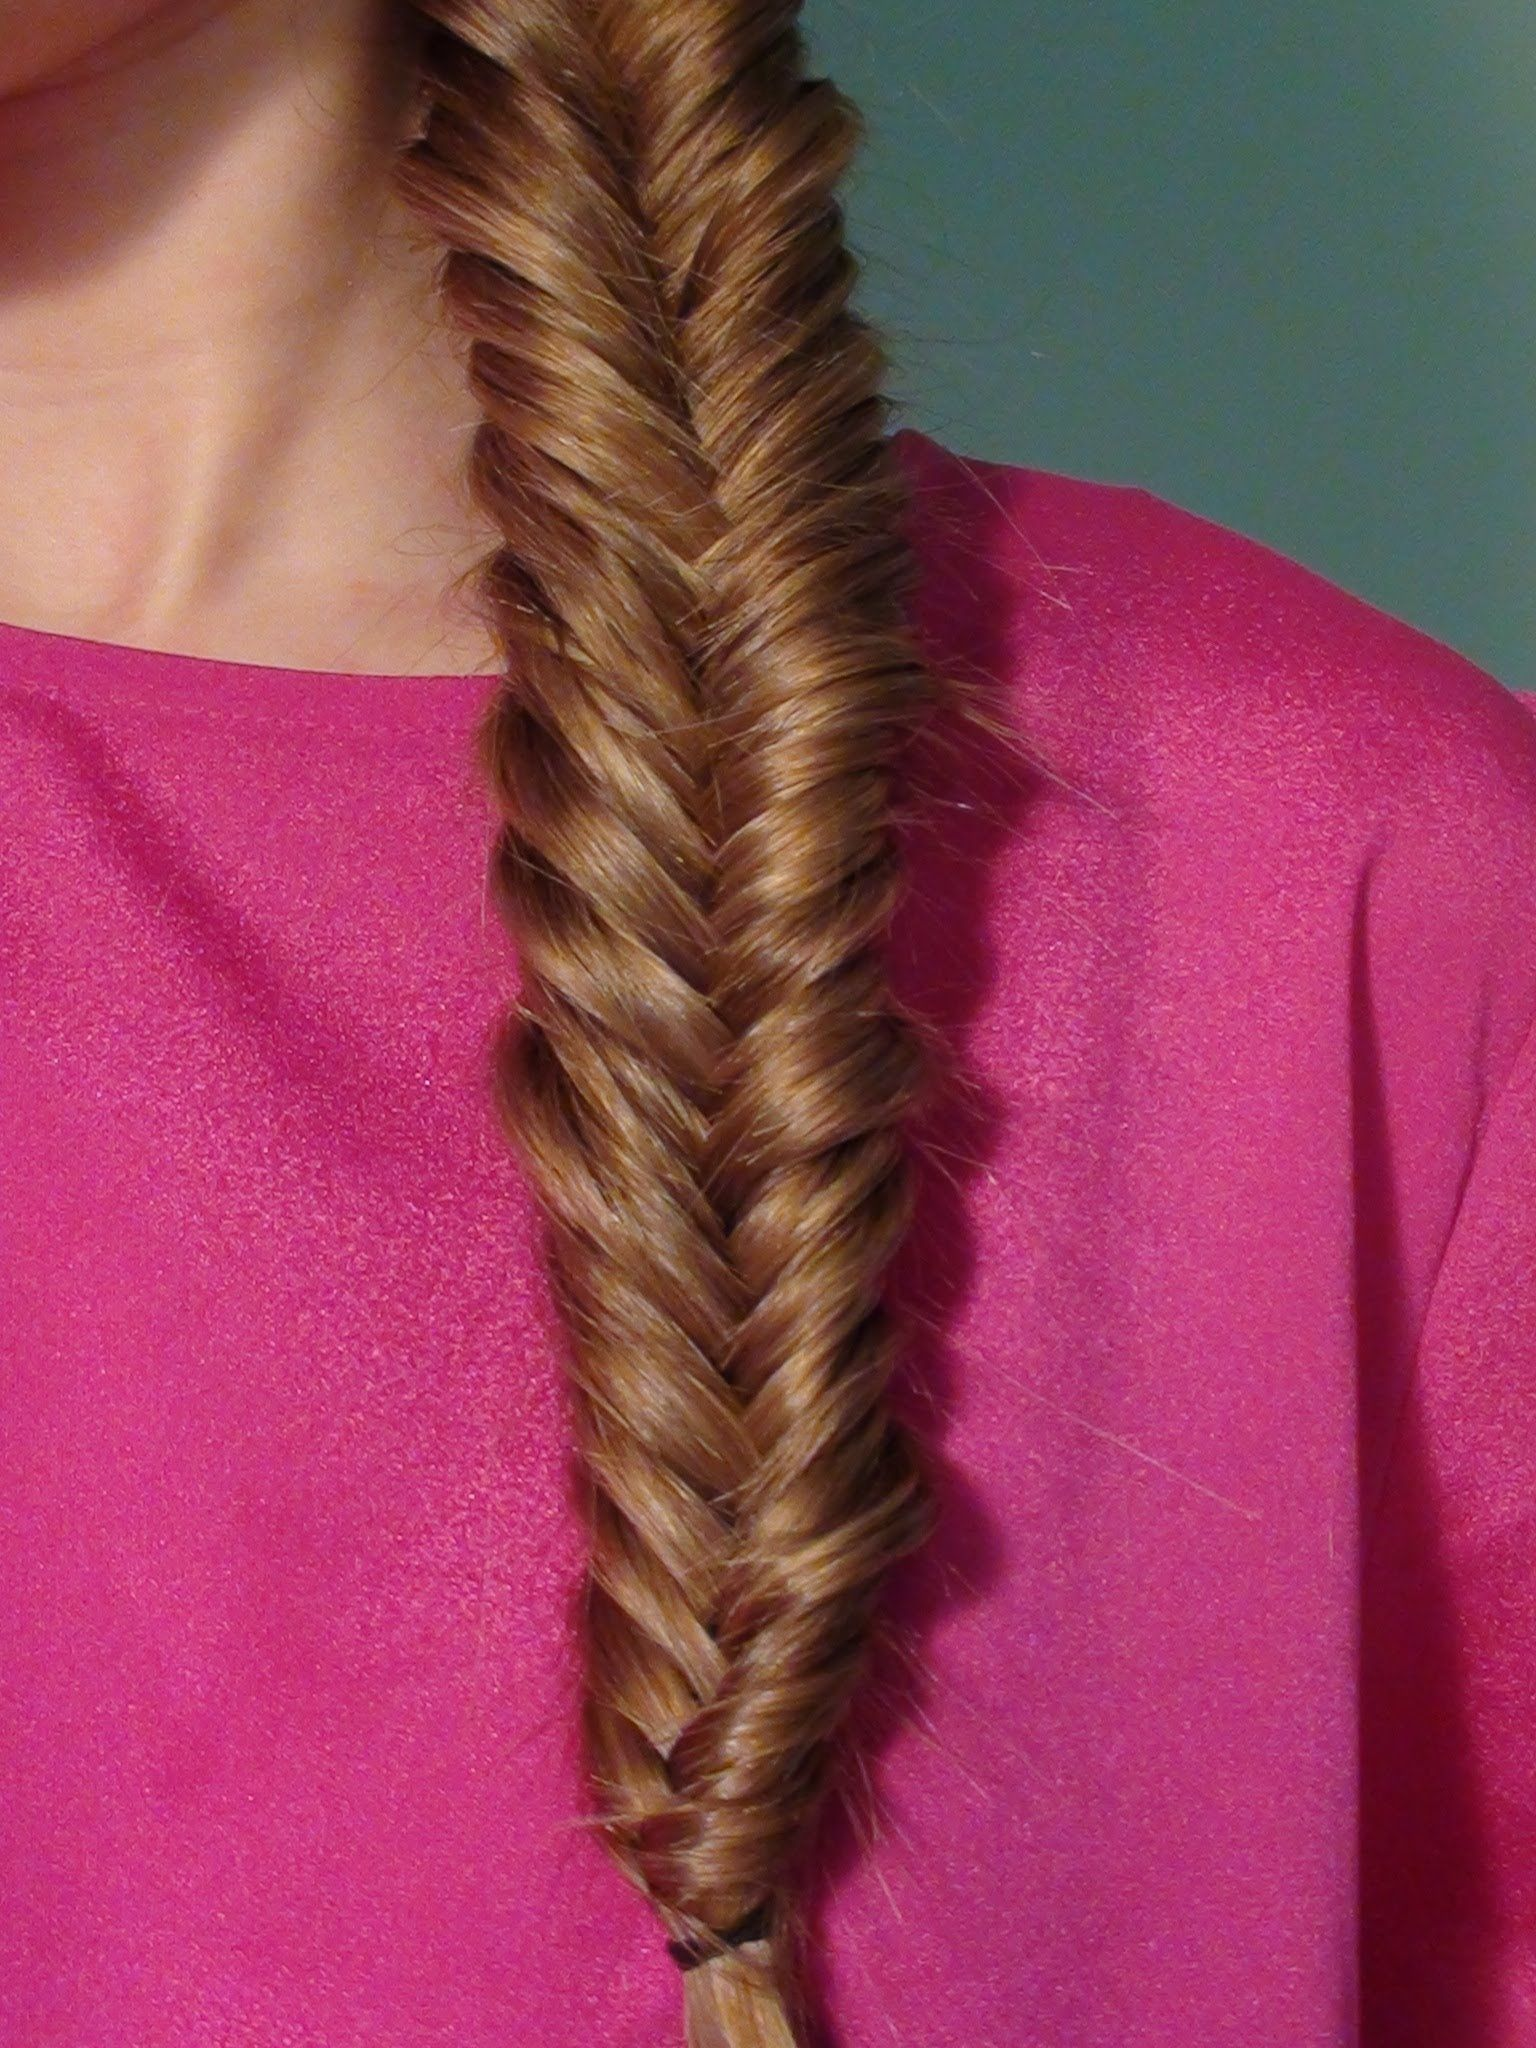 Discussion on this topic: 15 Ideas To Make Fishtail Braid Hairstyles , 15-ideas-to-make-fishtail-braid-hairstyles/